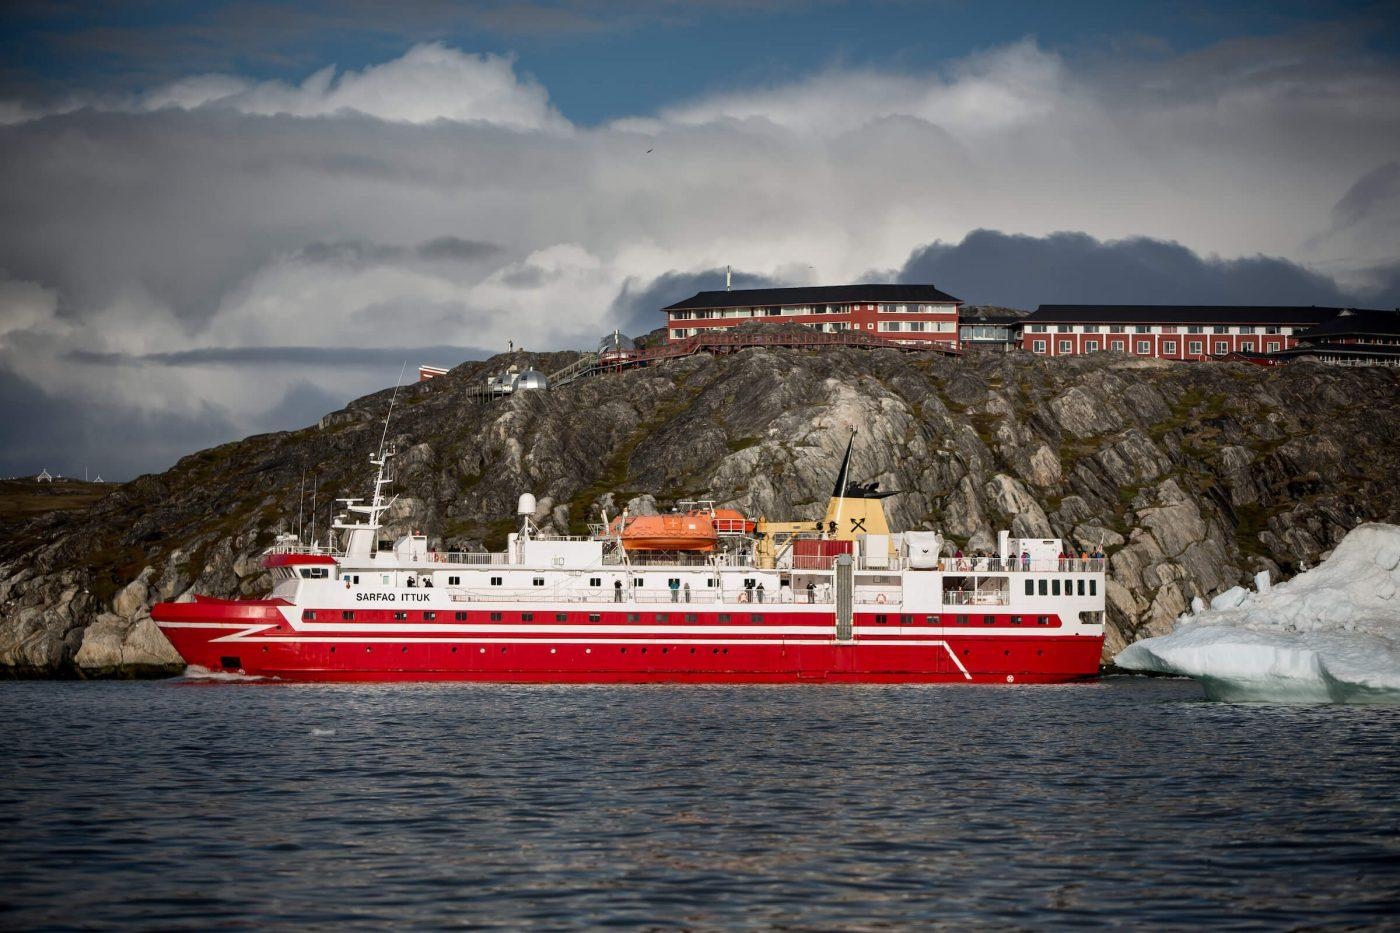 Sarfaq Ittuk passing underneath Hotel Arctic near Ilulissat in GreenlandGuests in one of the cabins in Sarfaq Ittuk. Visit Greenland